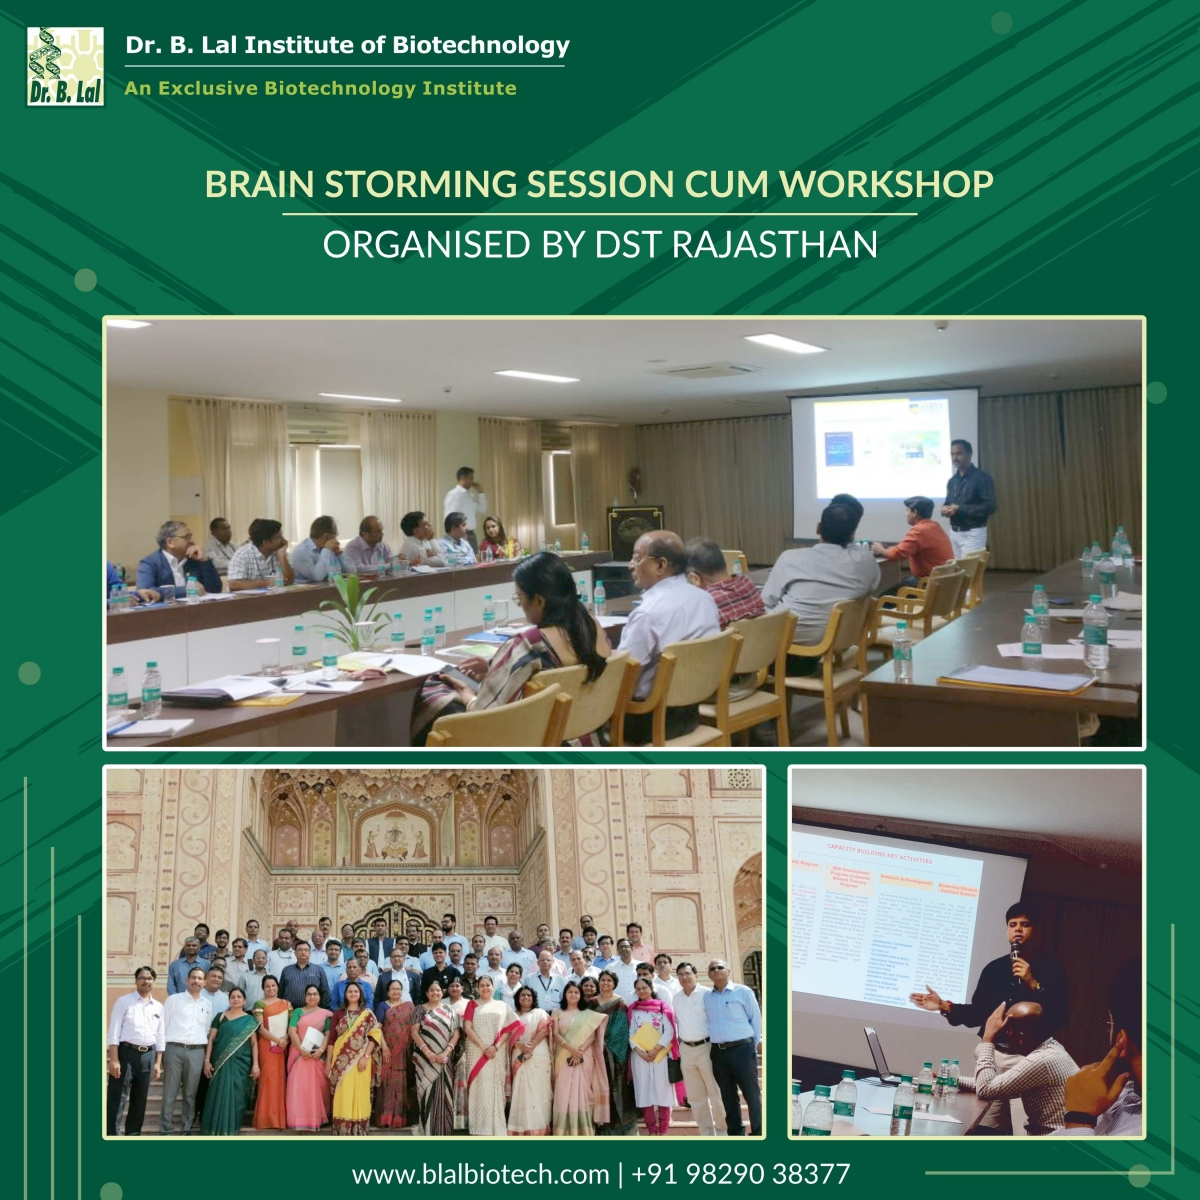 Brainstorming session cum workshop organized by the Department of Science & Technology, Rajasthan